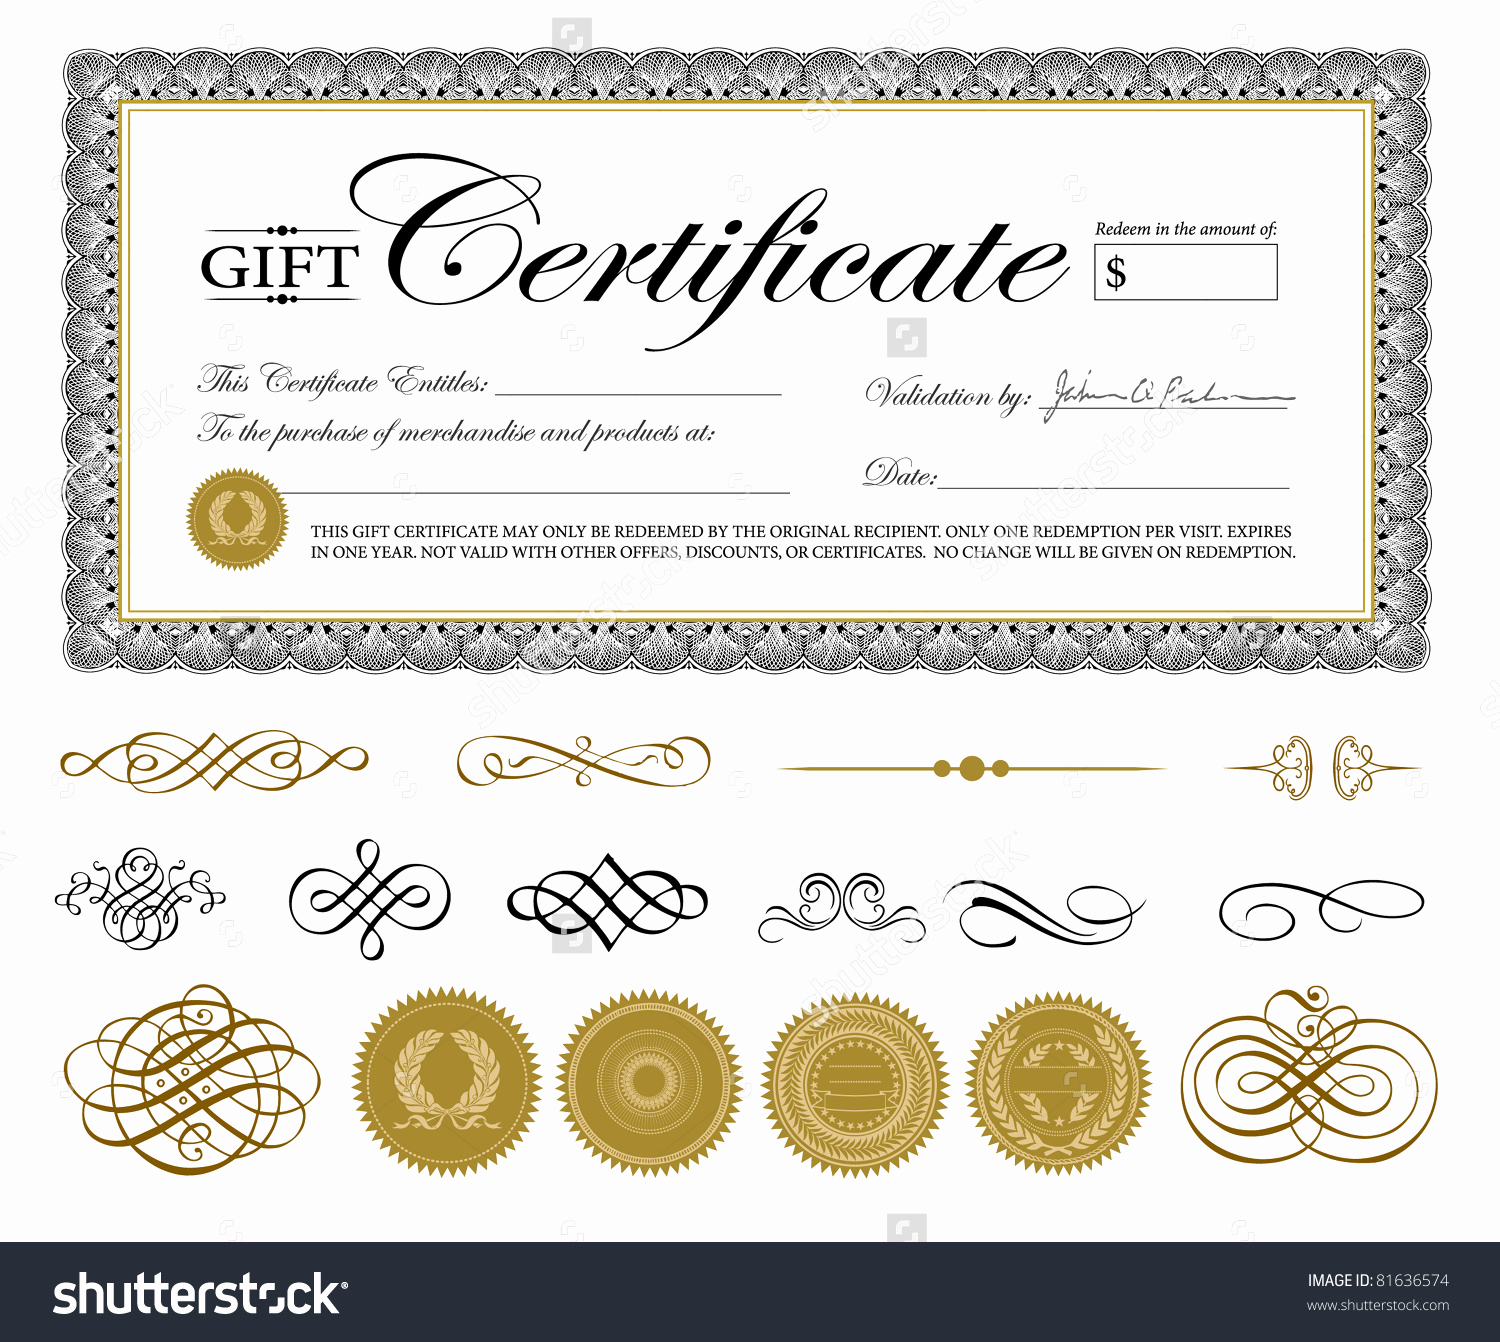 Template for Gift Certificate Luxury Gift Certificate Template